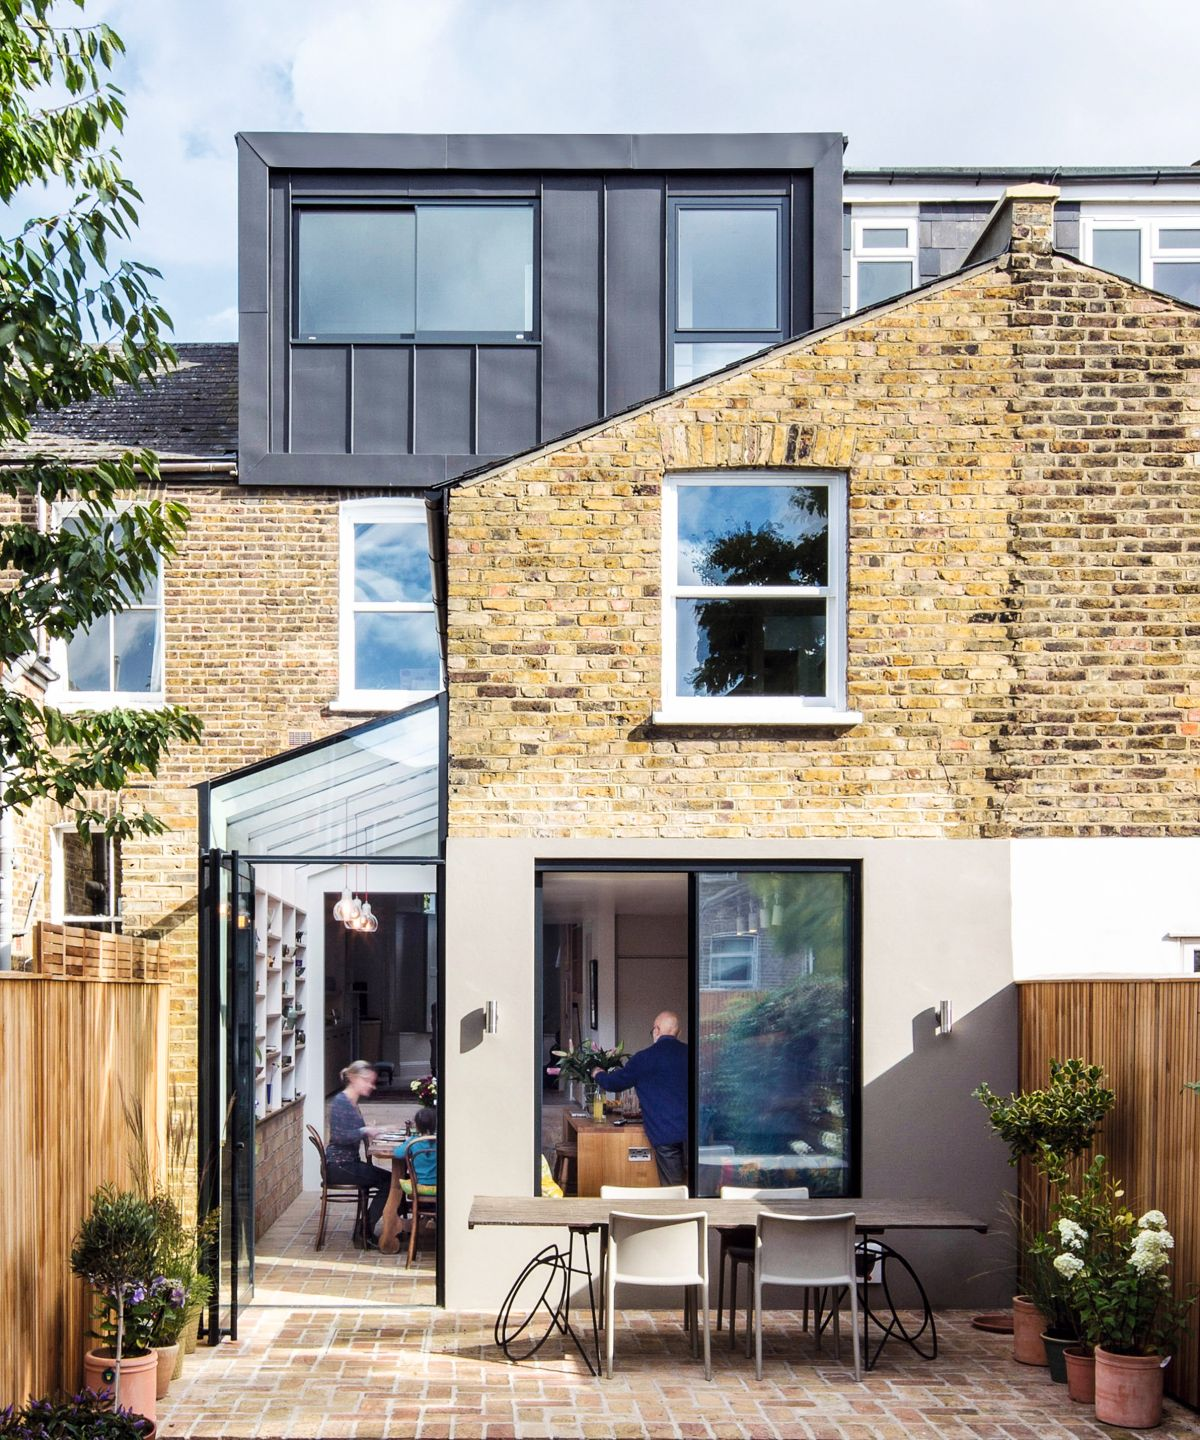 17 house extensions – best house extension ideas for every budget